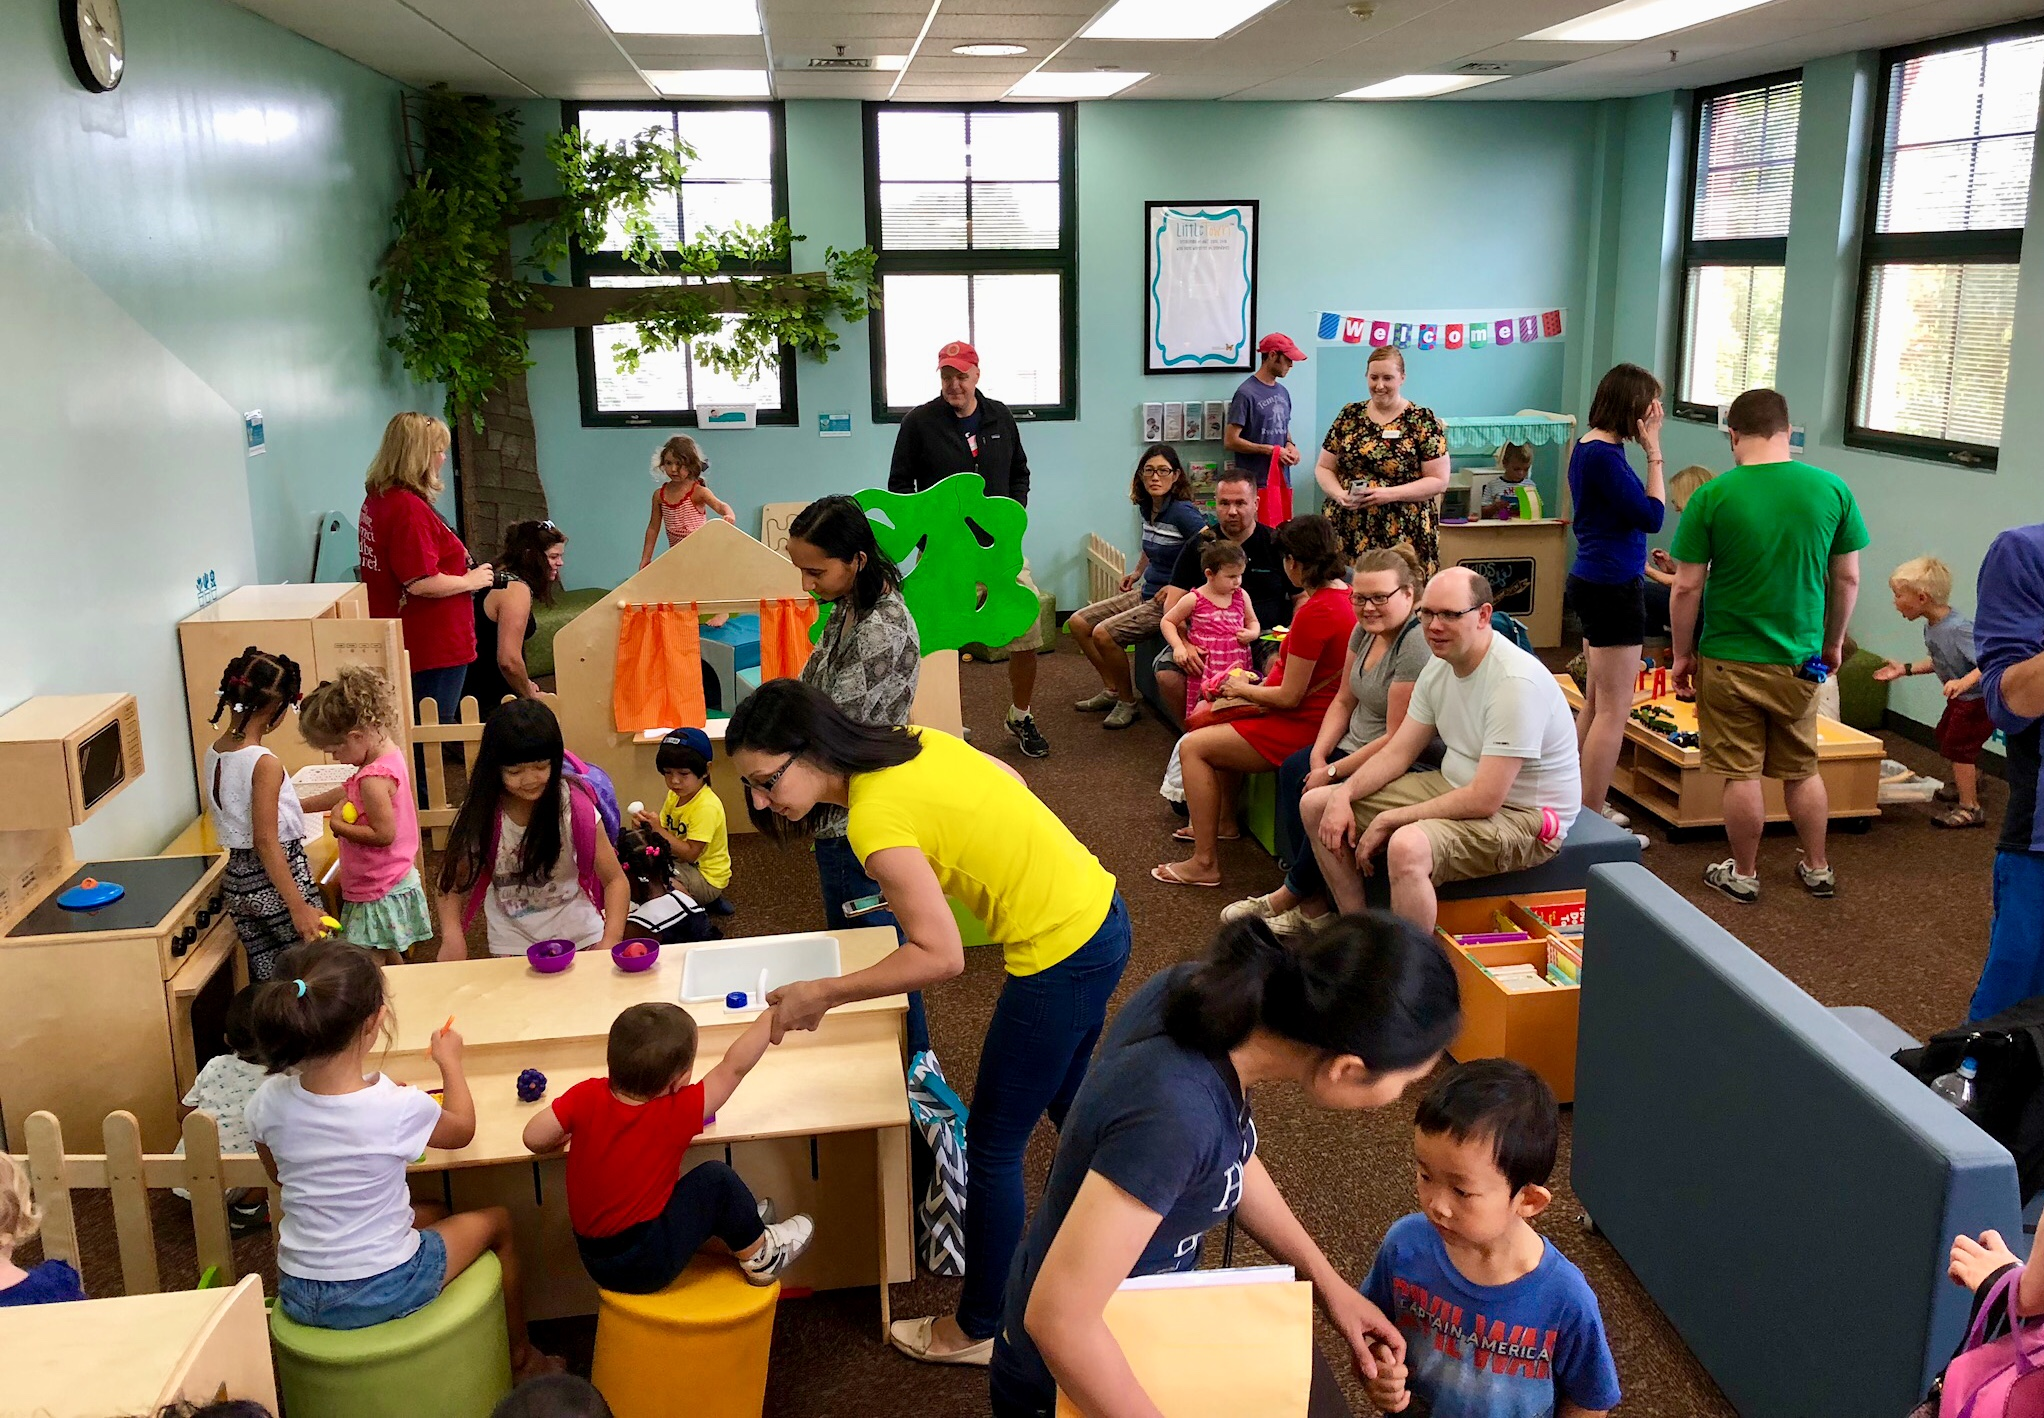 LittleTown at the Indian Prairie Public Library